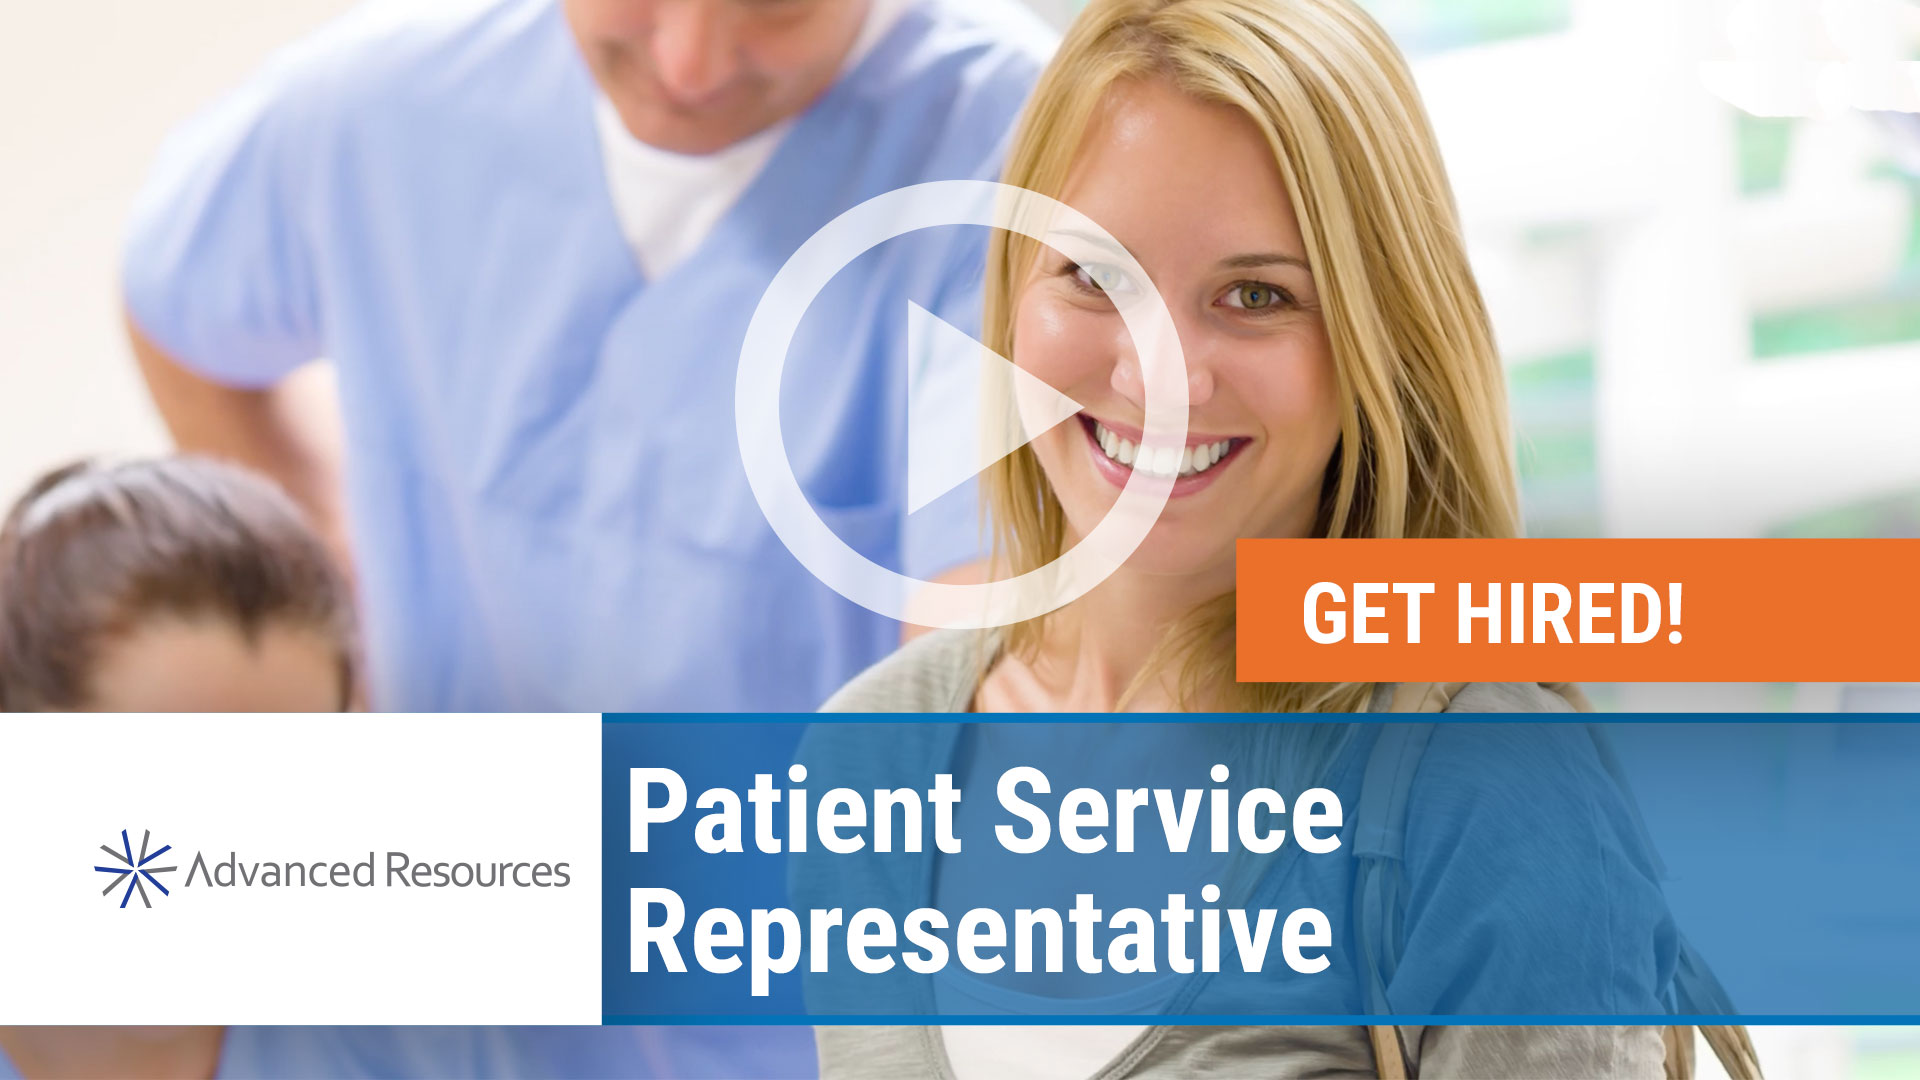 Watch our careers video for available job opening Patient Service Representative in Chicago, Illinois